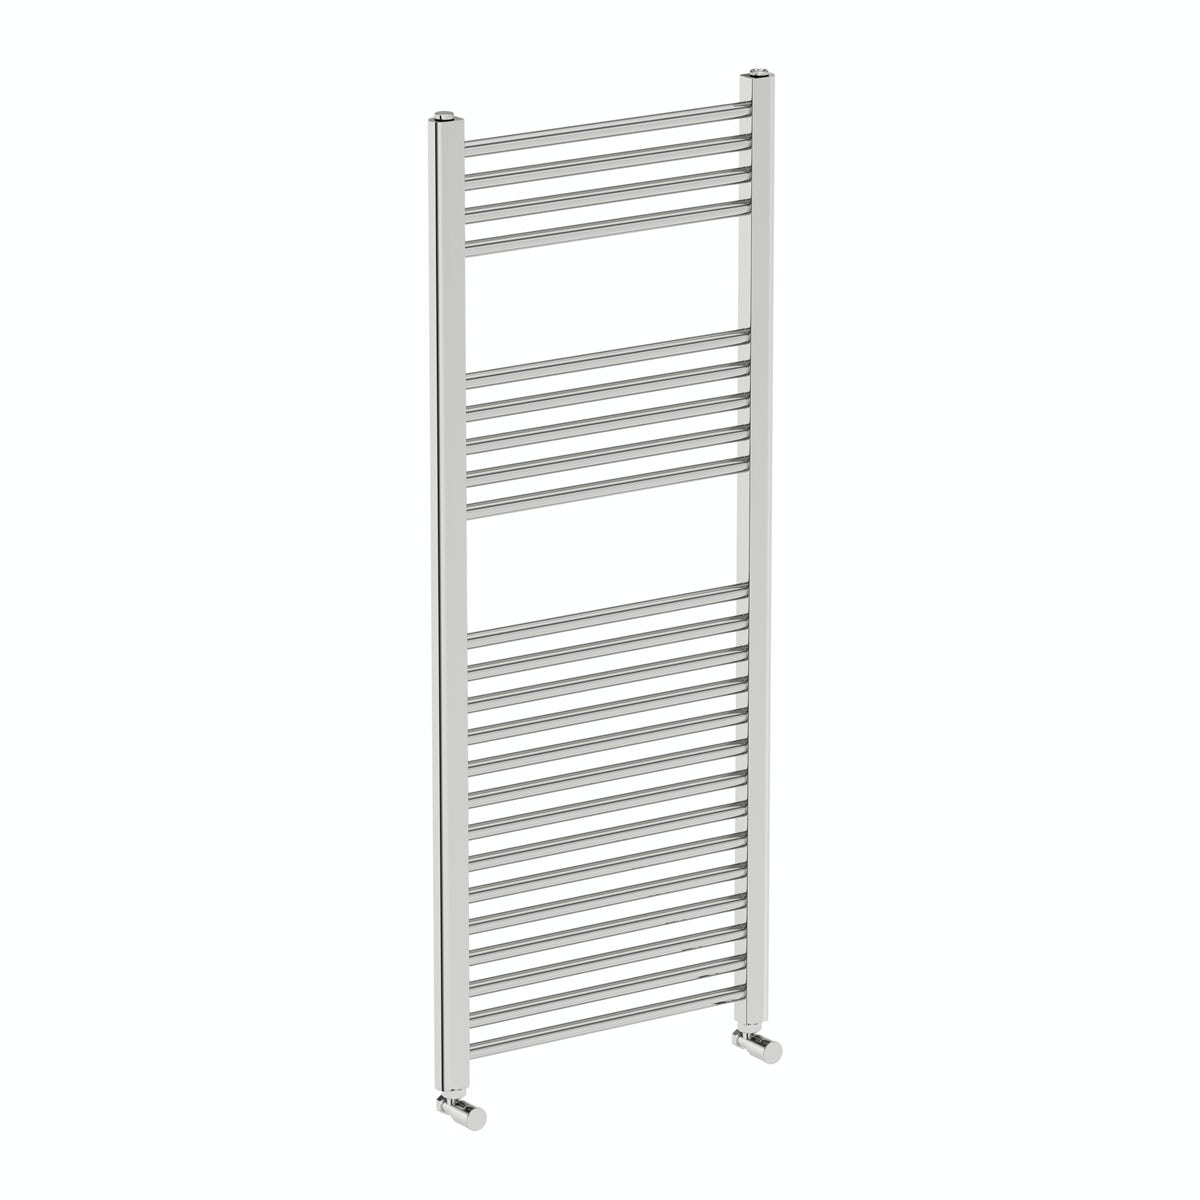 Orchard Eden round heated towel rail 1200 x 490 offer pack